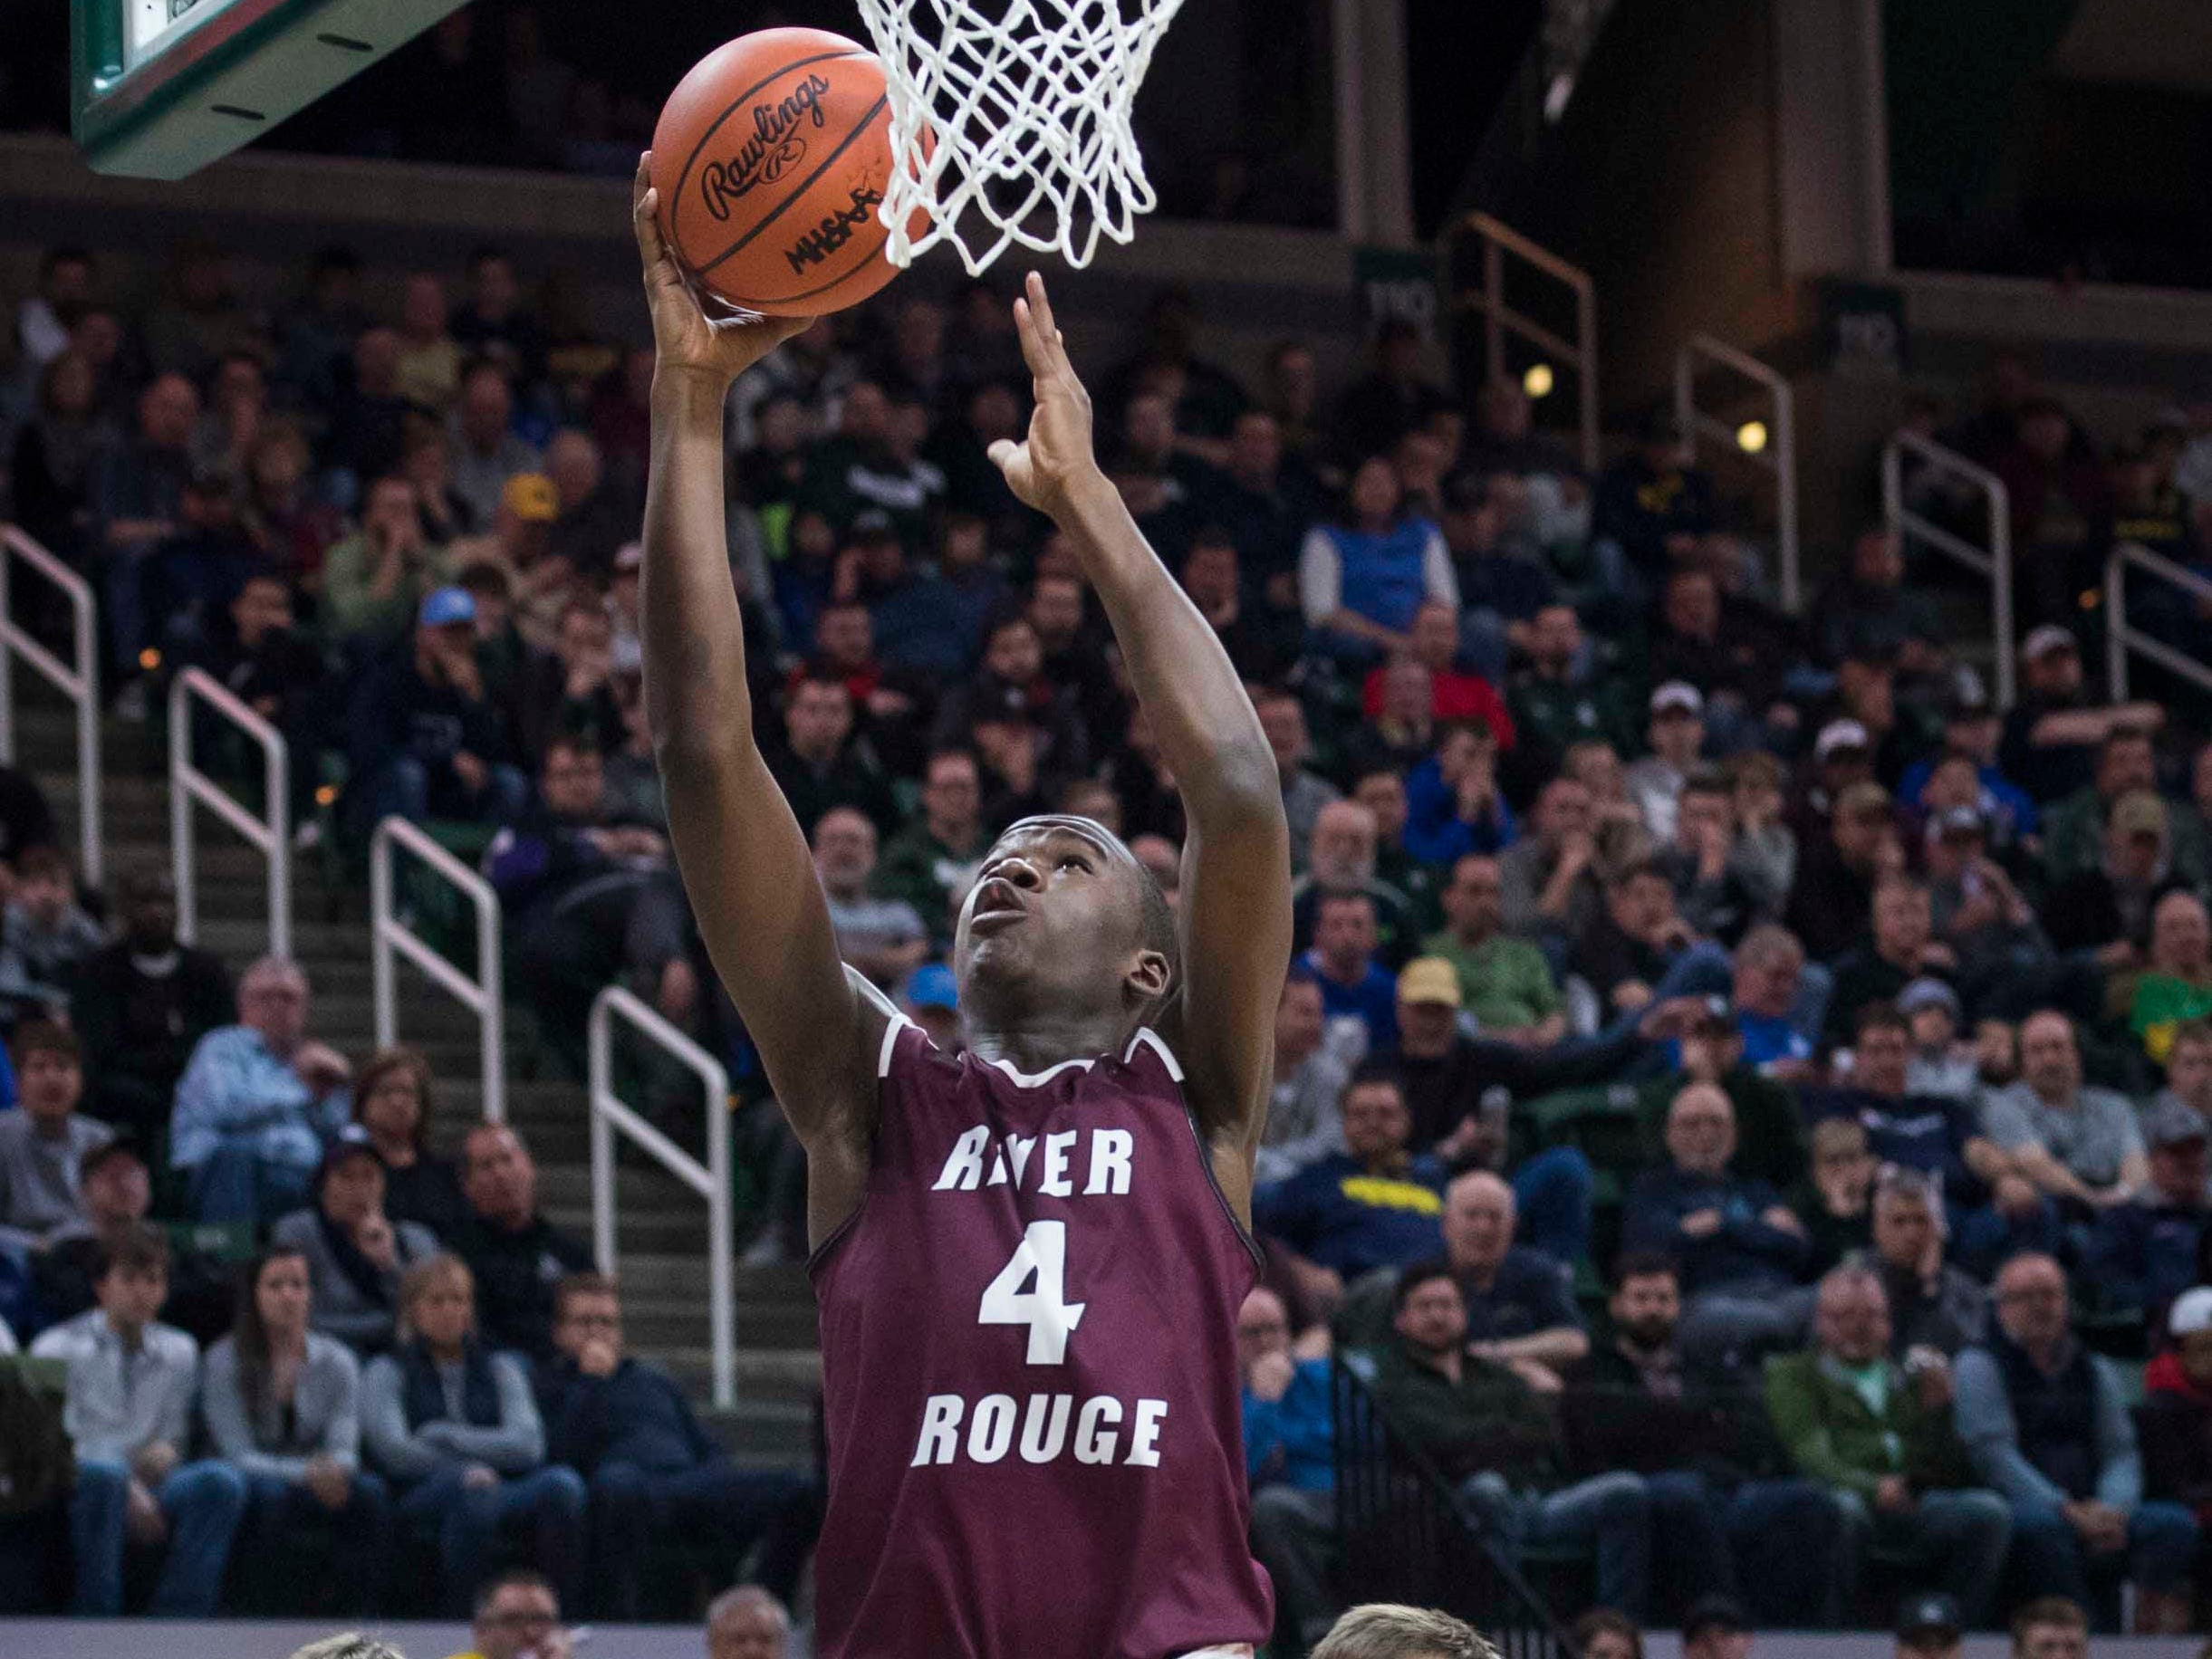 River Rouge's Legend Parrish shoots a layup in the first half.